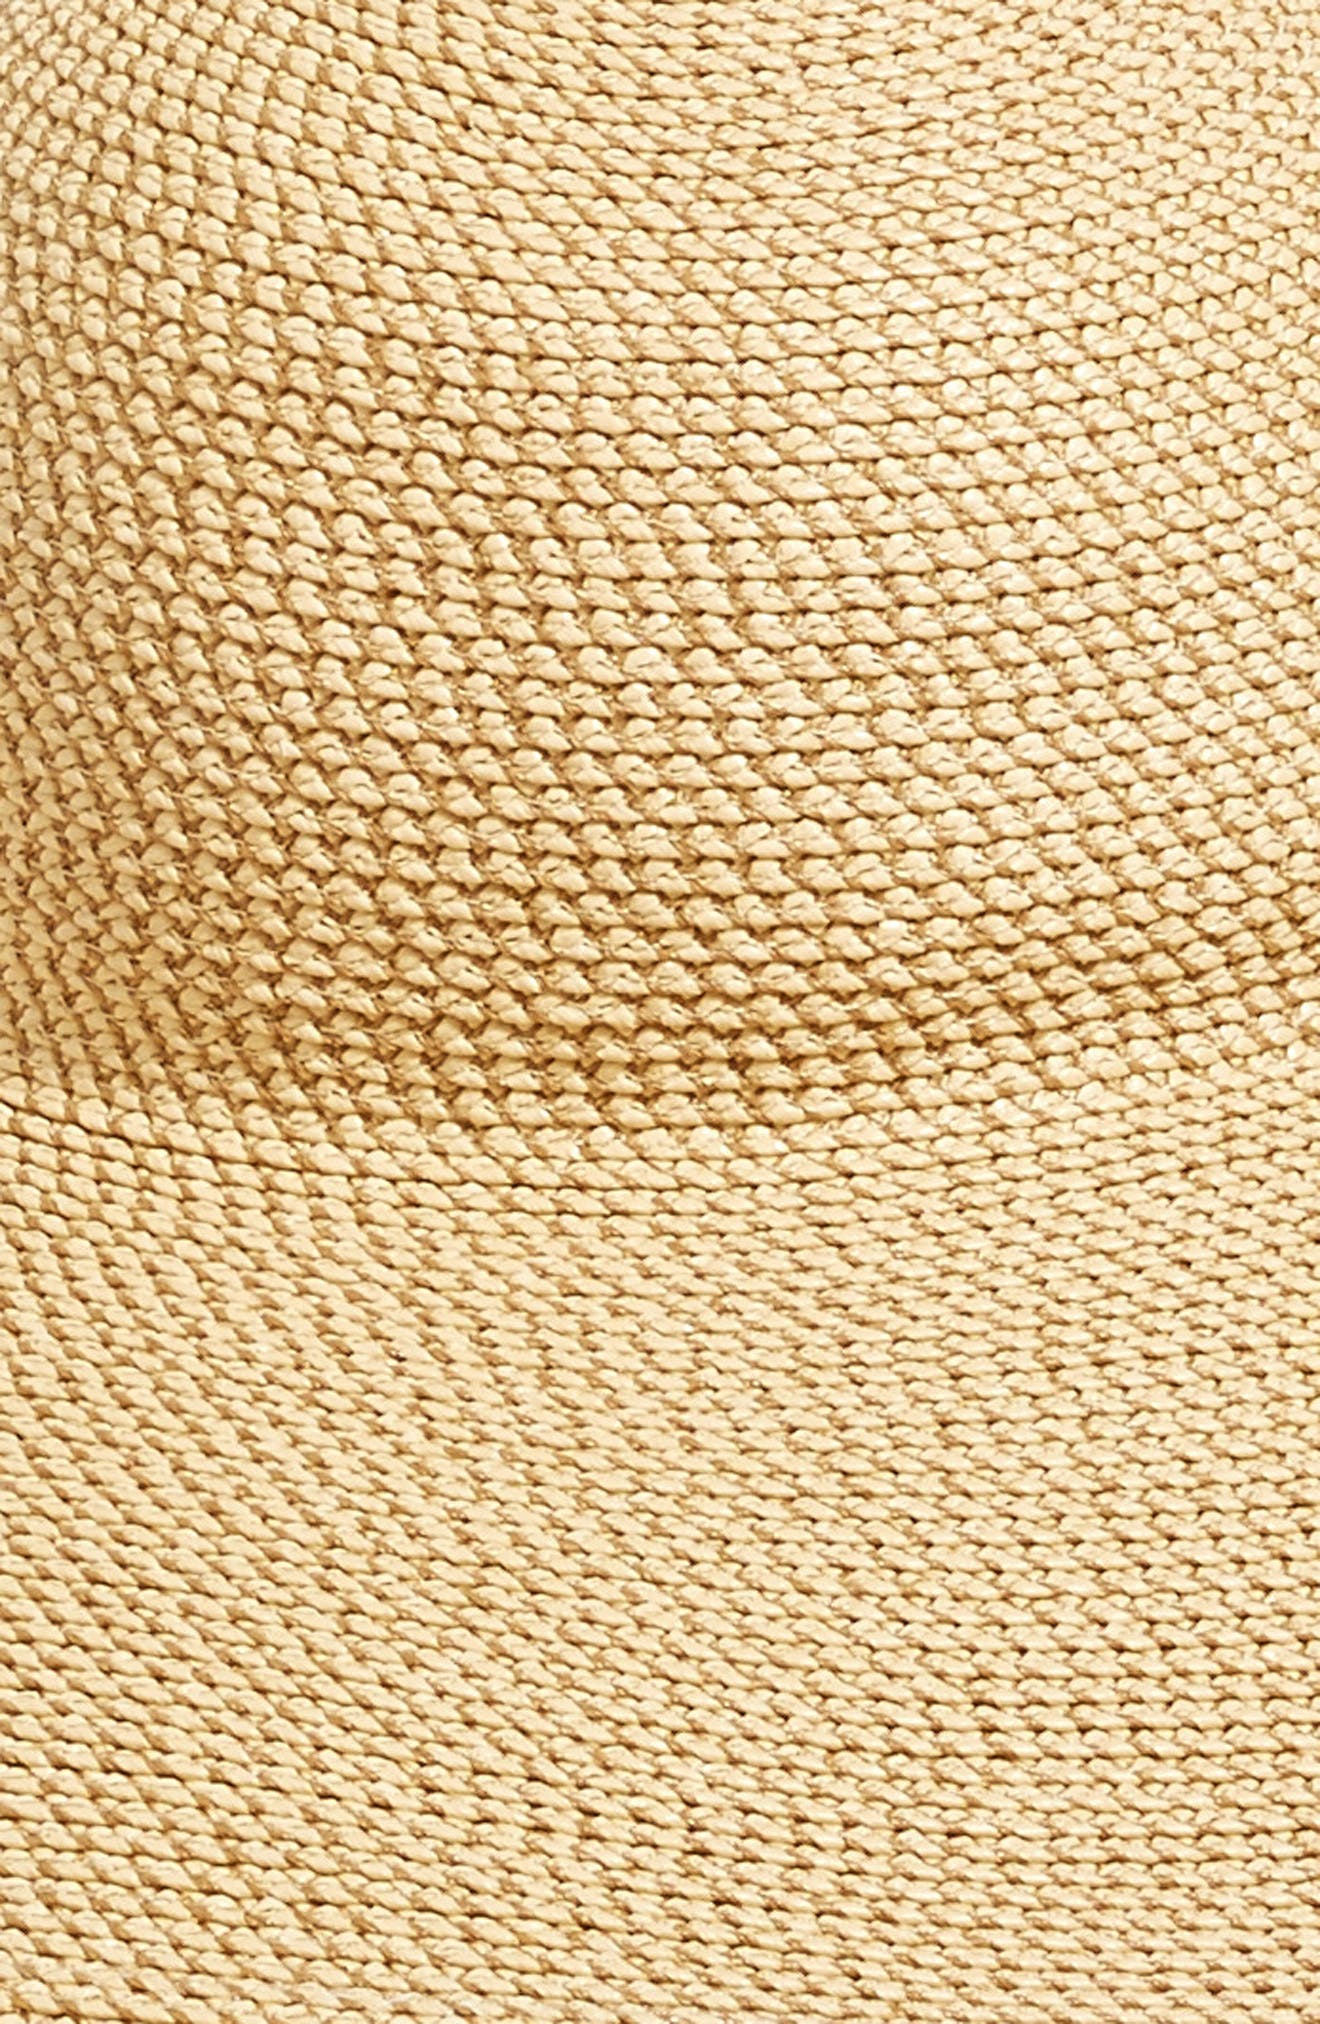 Alternate Image 3  - Eric Javits Fringed Squishee® Packable Floppy Hat